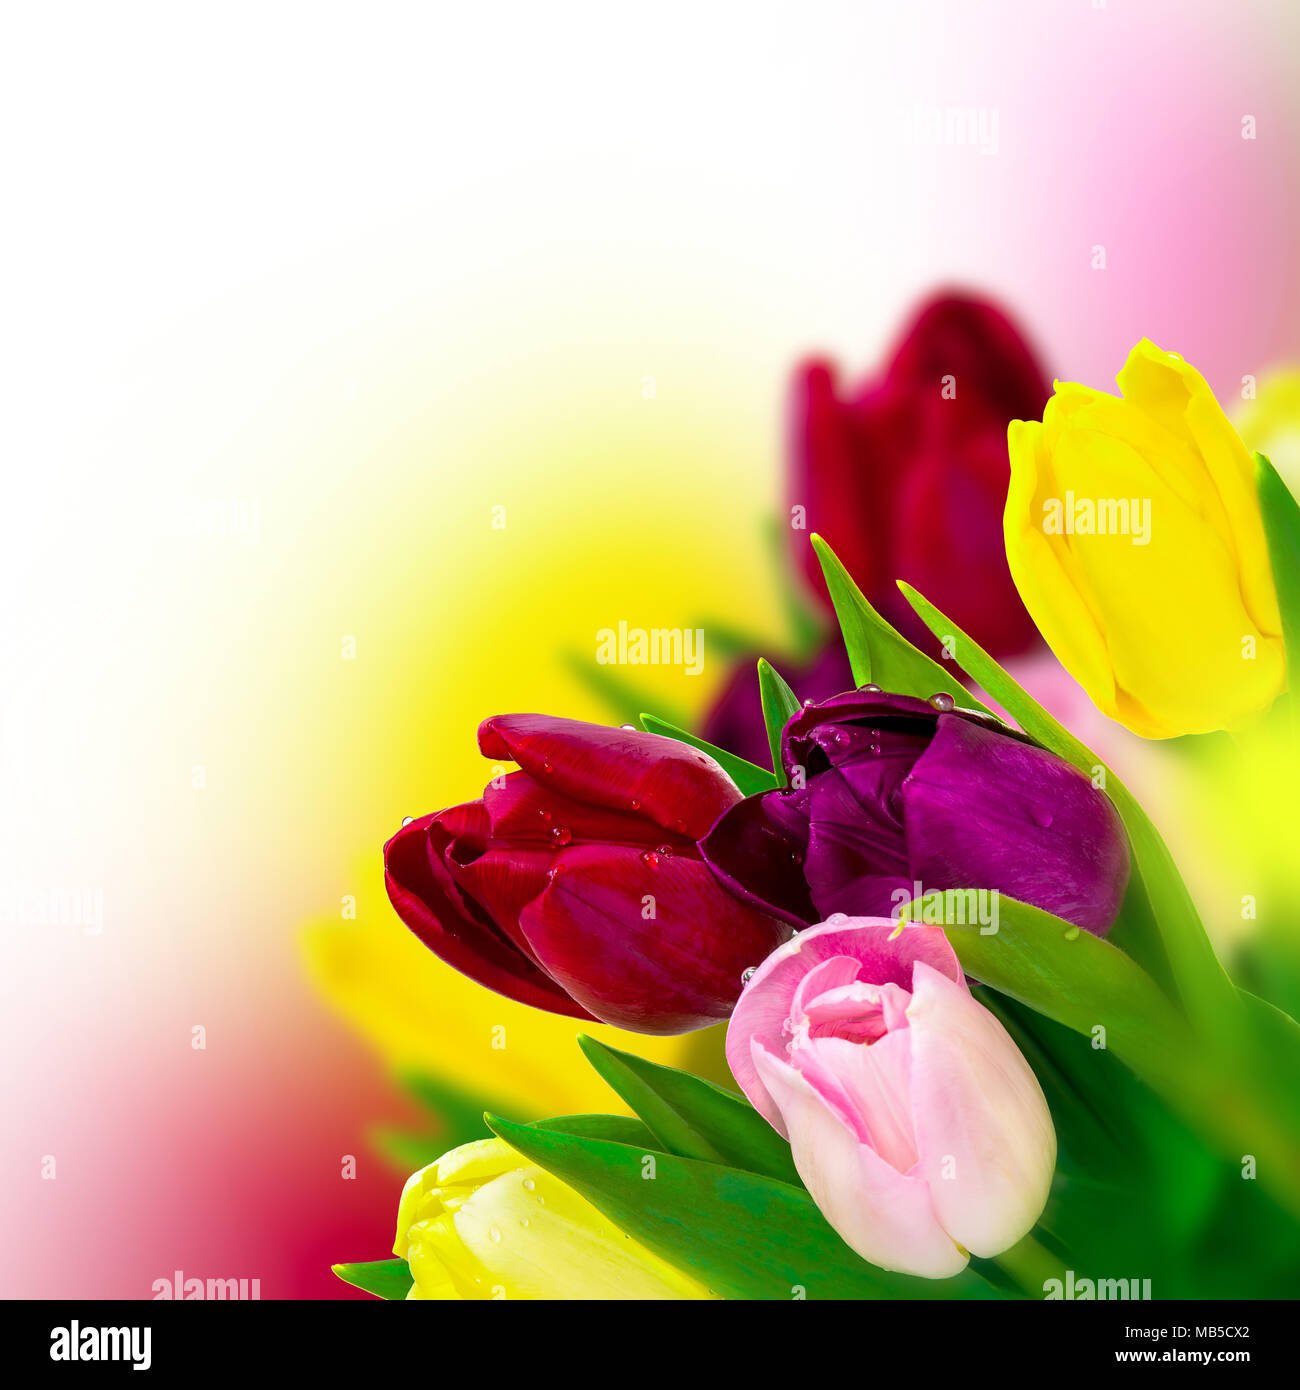 Beautiful tulip pink red purple yellow flower bouquet square beautiful tulip pink red purple yellow flower bouquet square background greeting card template spring narture soft toned mightylinksfo